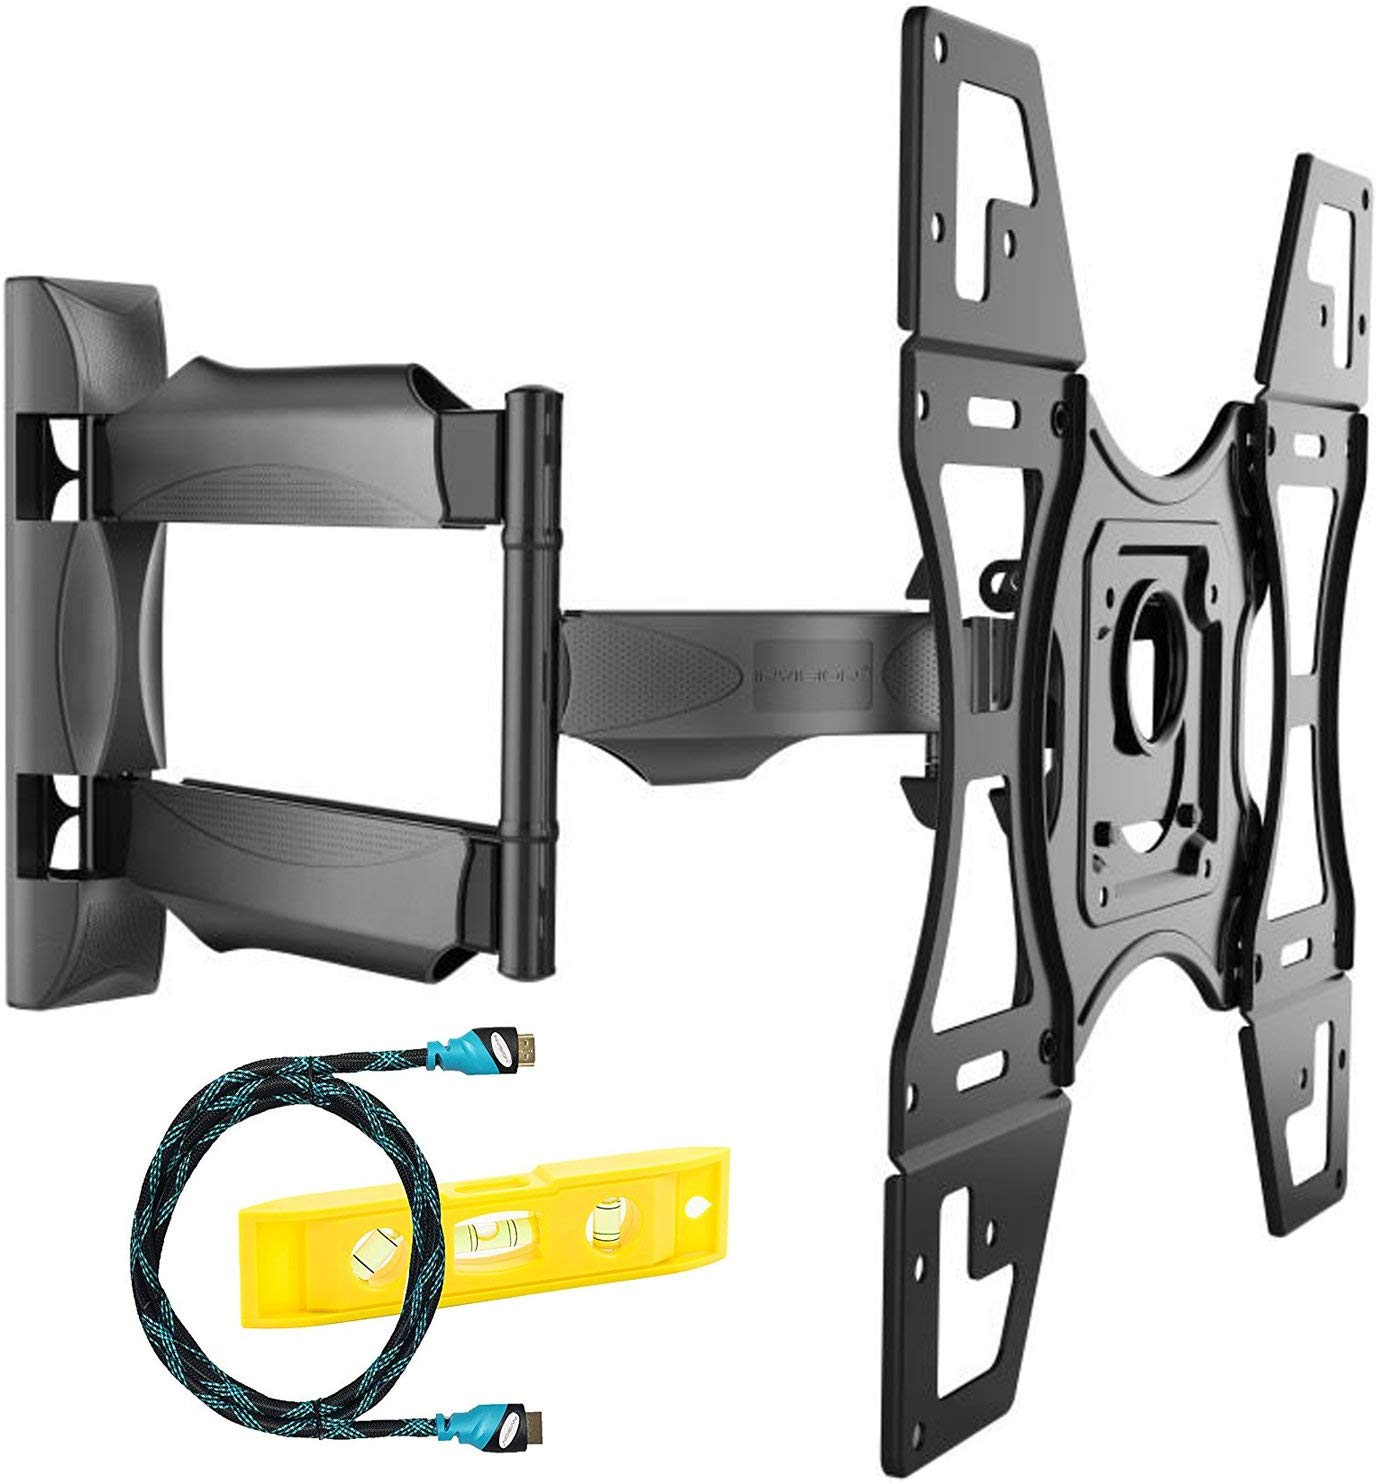 Invision Wall Mount Bracket